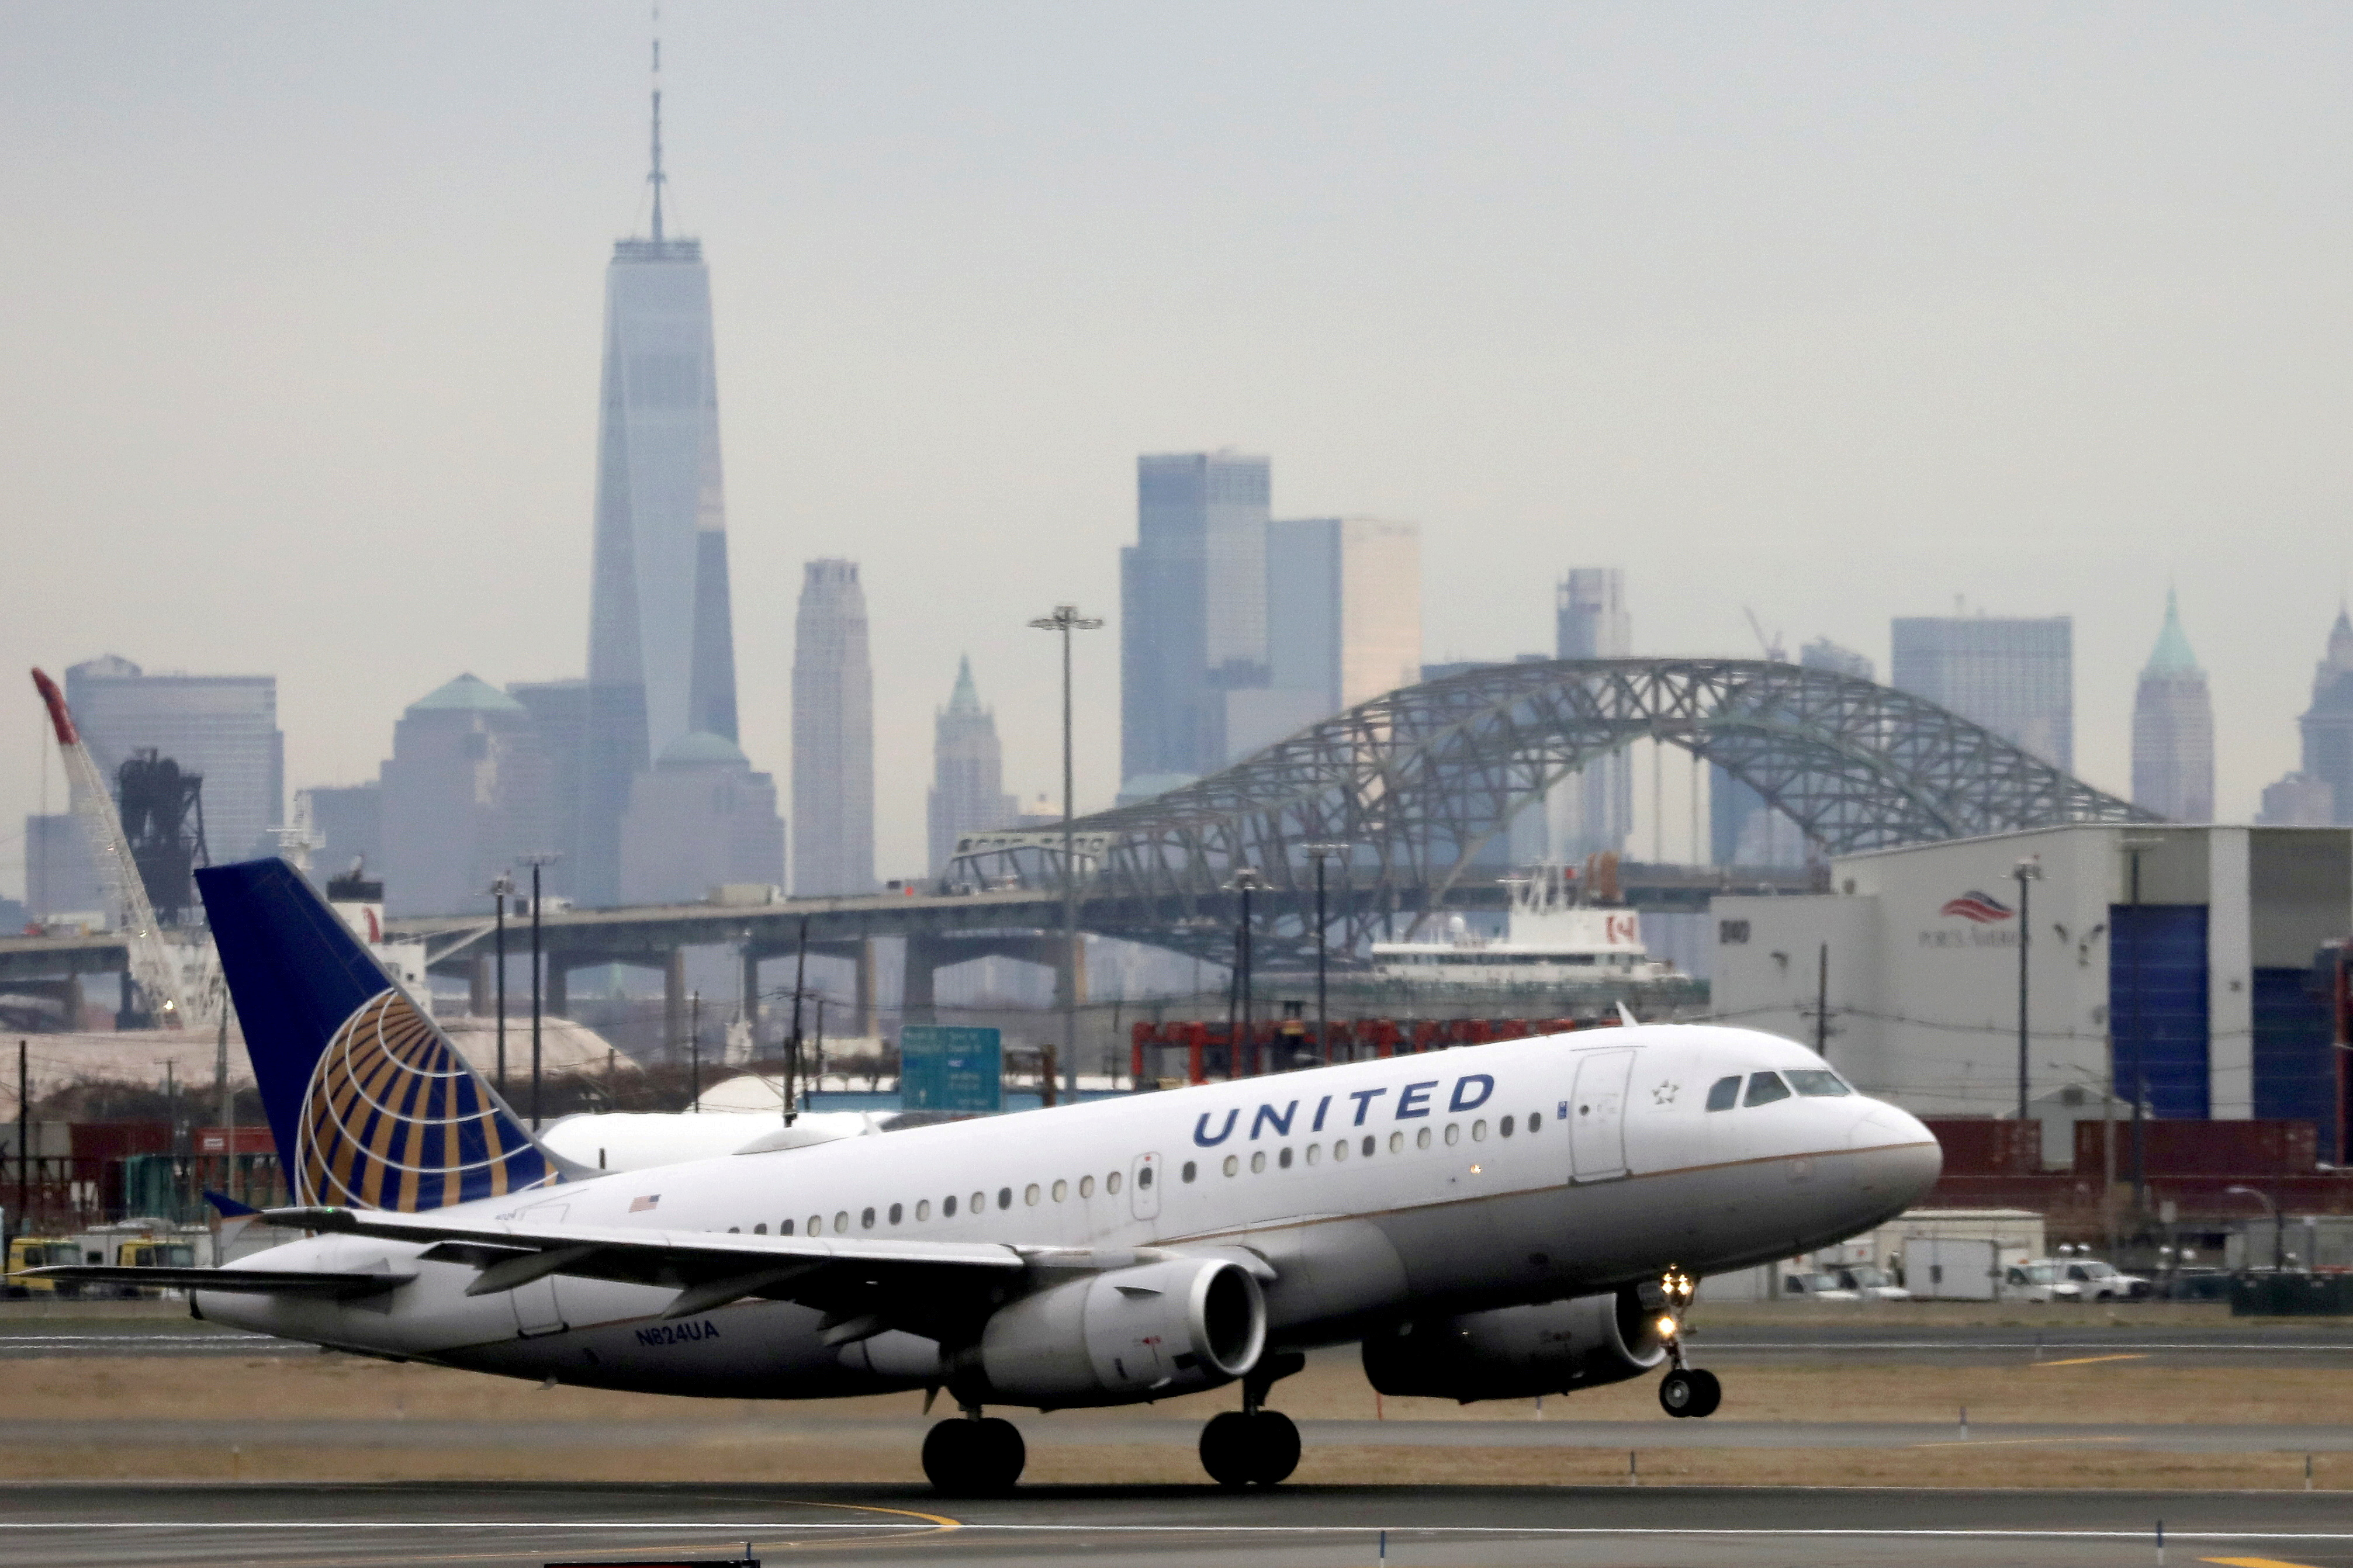 A United Airlines passenger jet takes off with New York City as a backdrop, at Newark Liberty International Airport, New Jersey, U.S. December 6, 2019. REUTERS/Chris Helgren